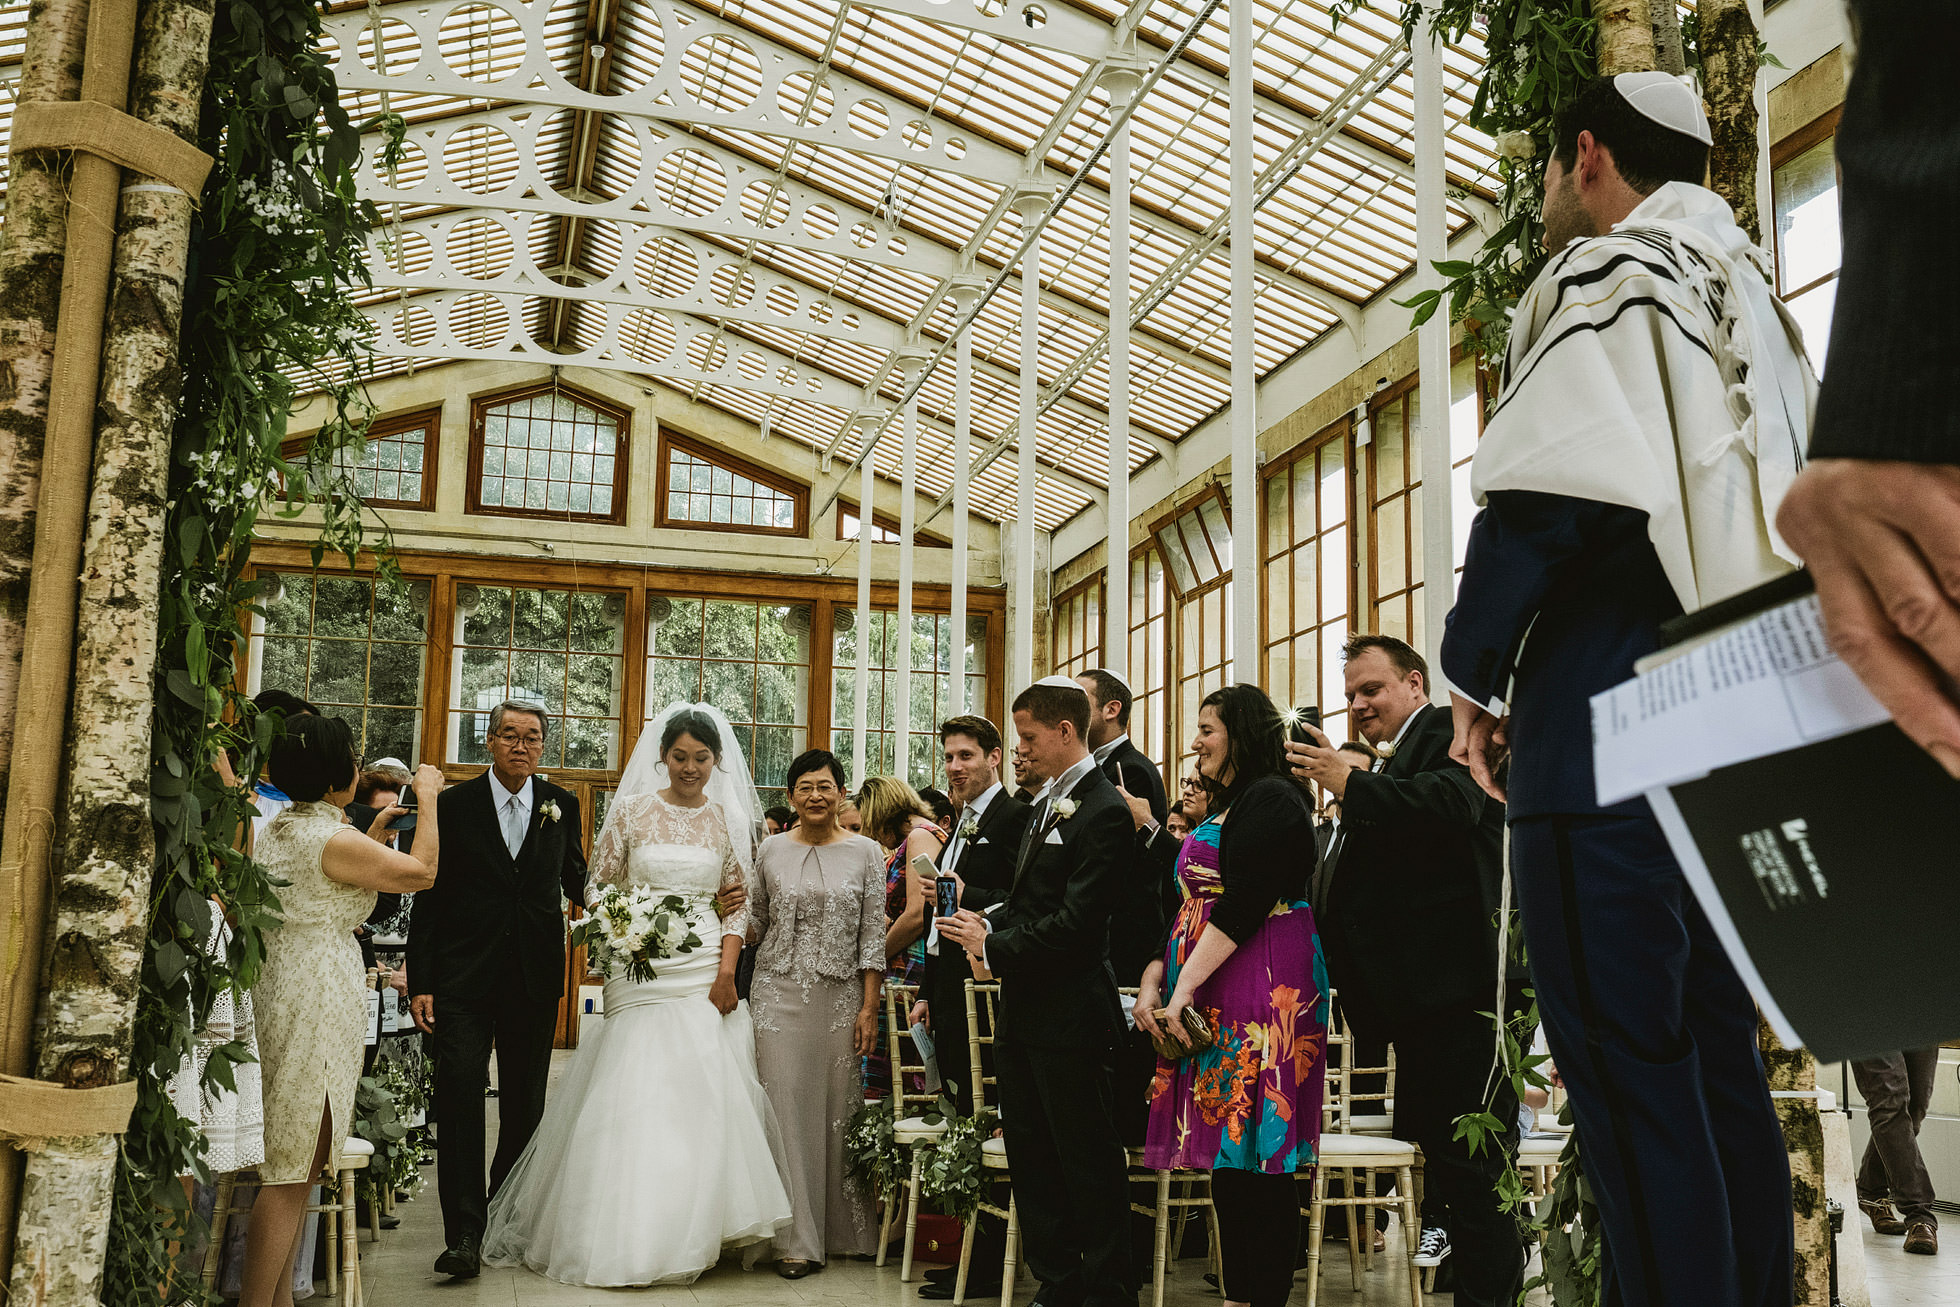 Kew Gardens Wedding Ceremony